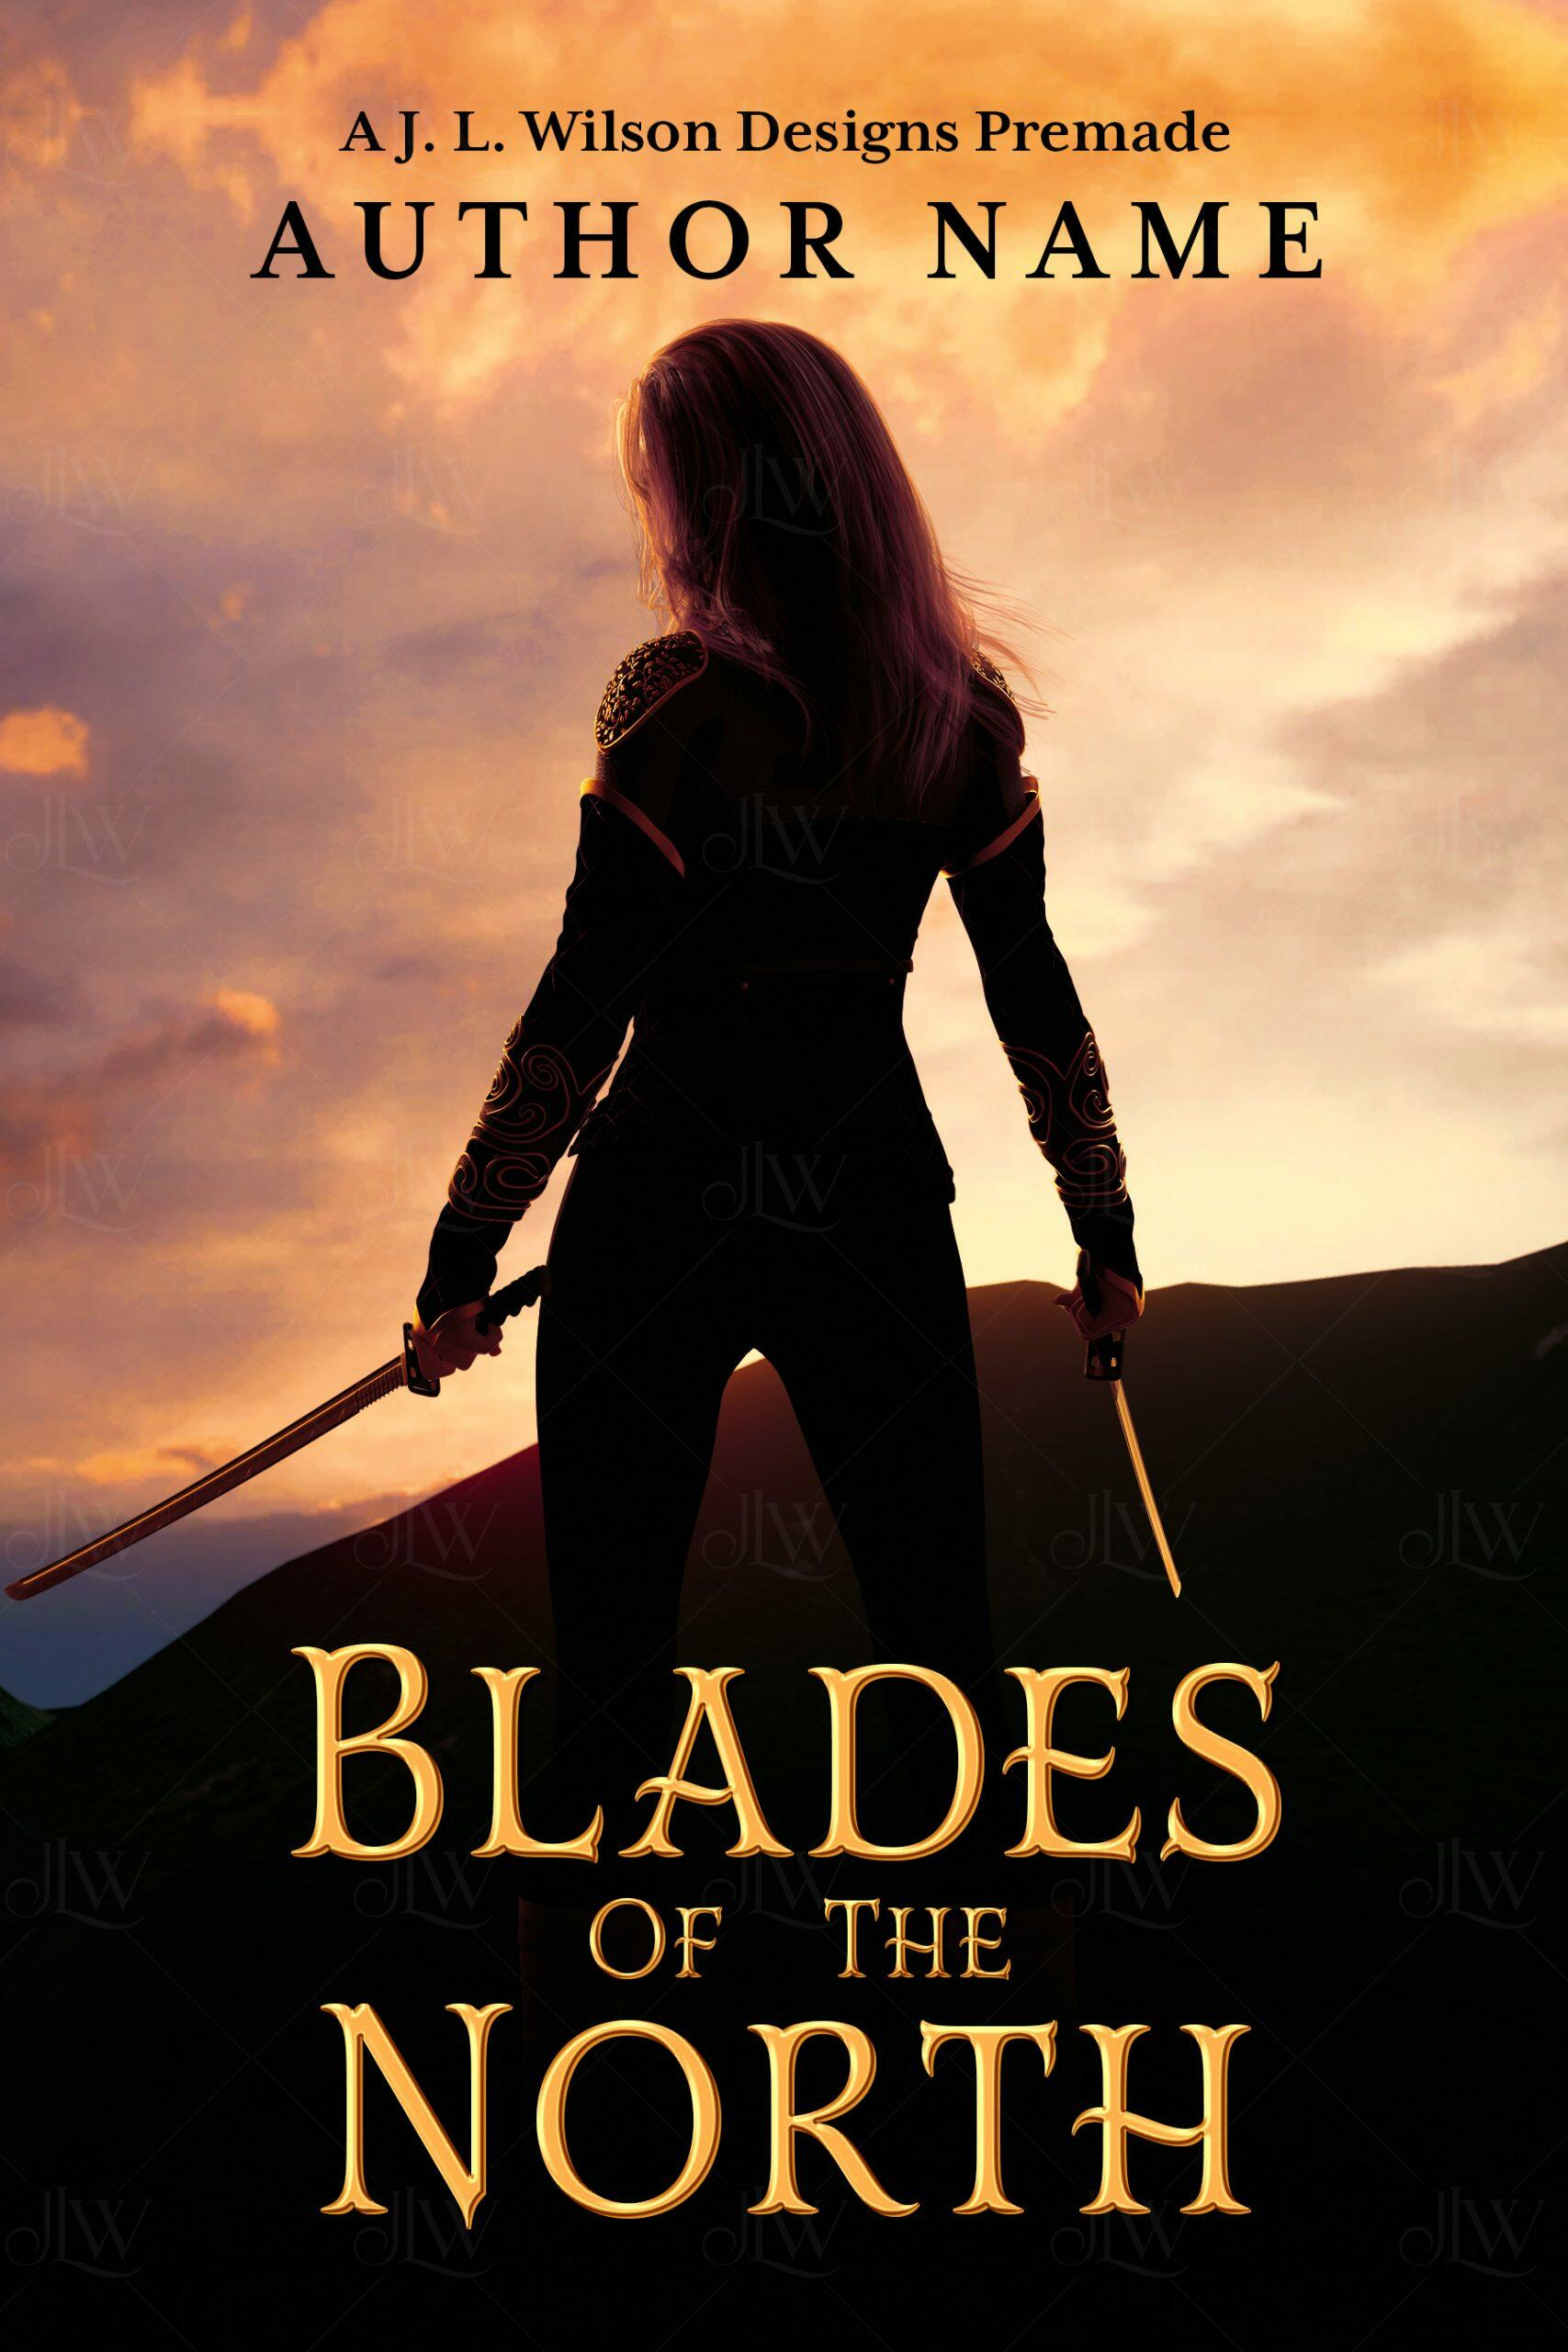 An epic fantasy book cover with a warrior woman holding swords at sunset against a mountain backdrop